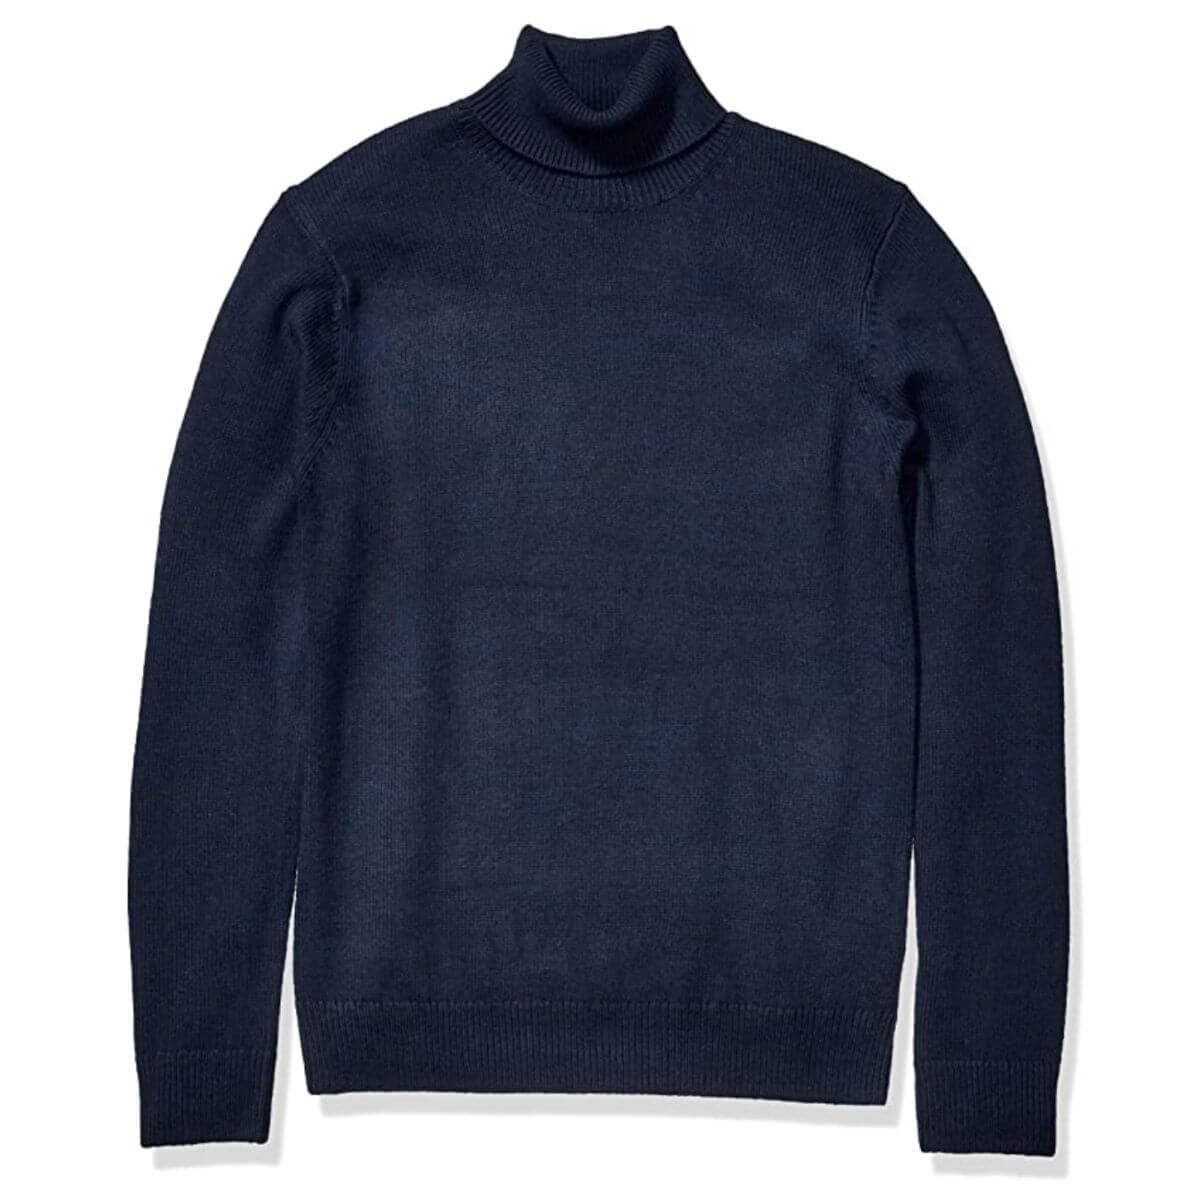 Navy turtleneck sweater by Goodthreads.